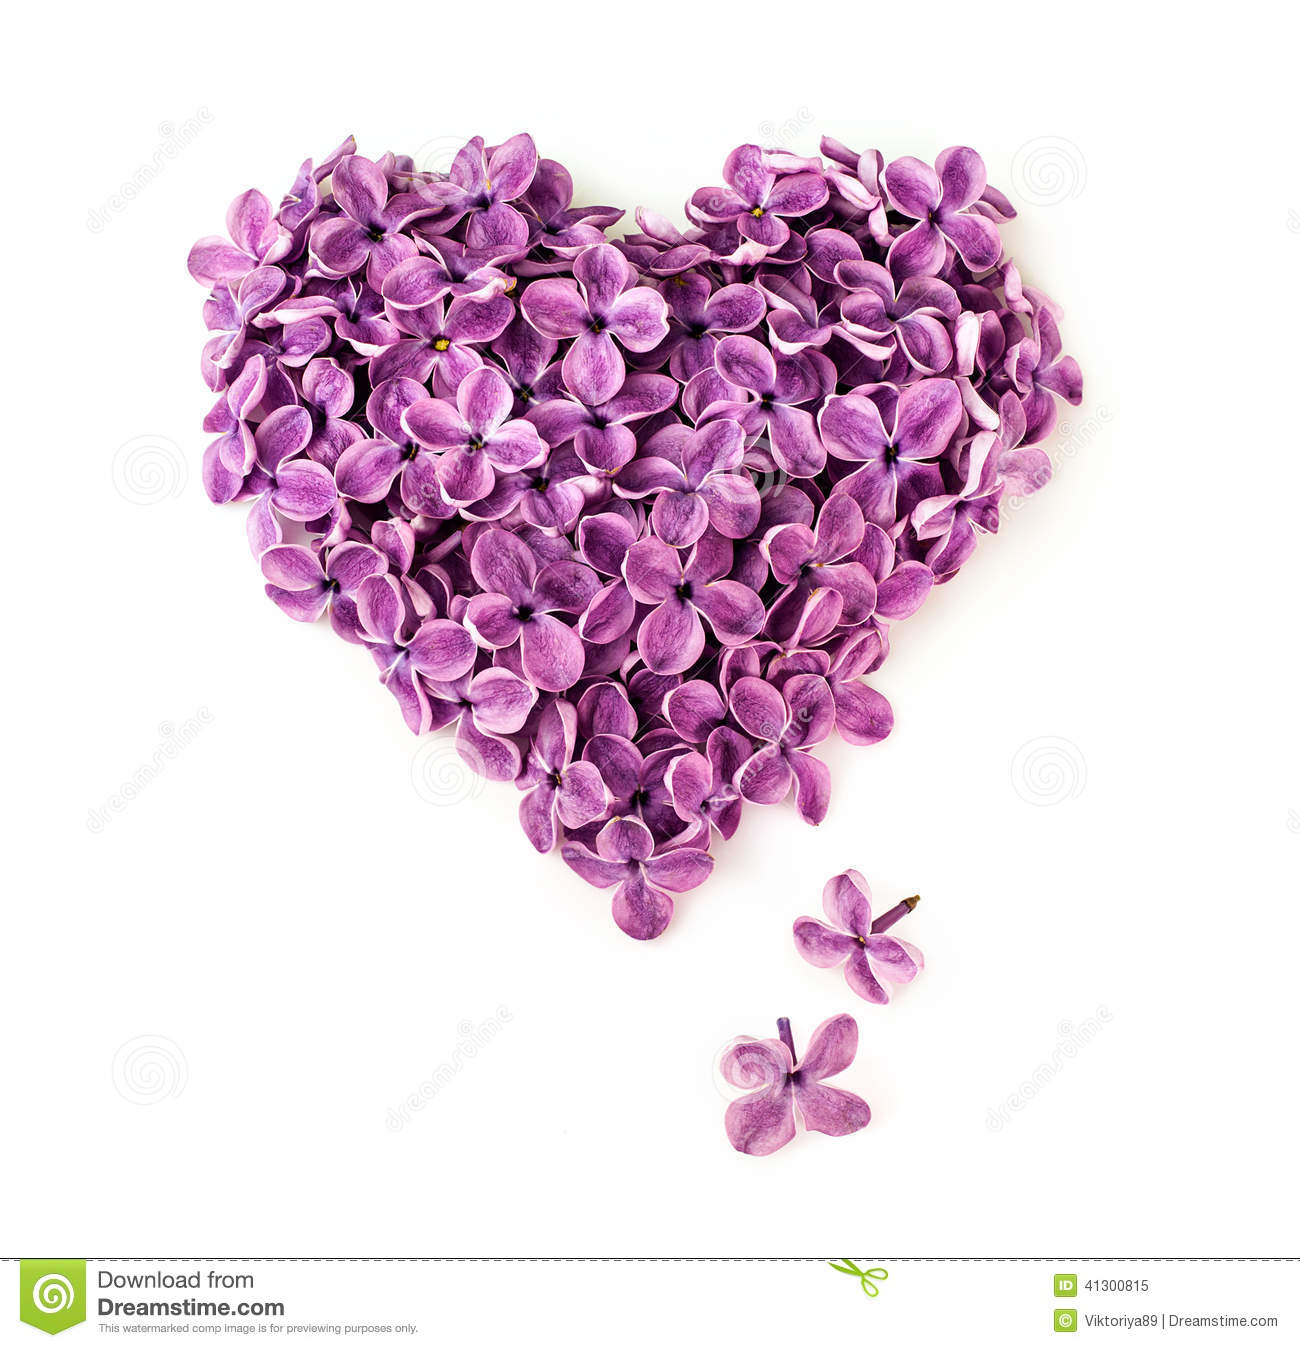 Lilac Flowers In Shape Of Heart Stock Photo - Image: 41300815